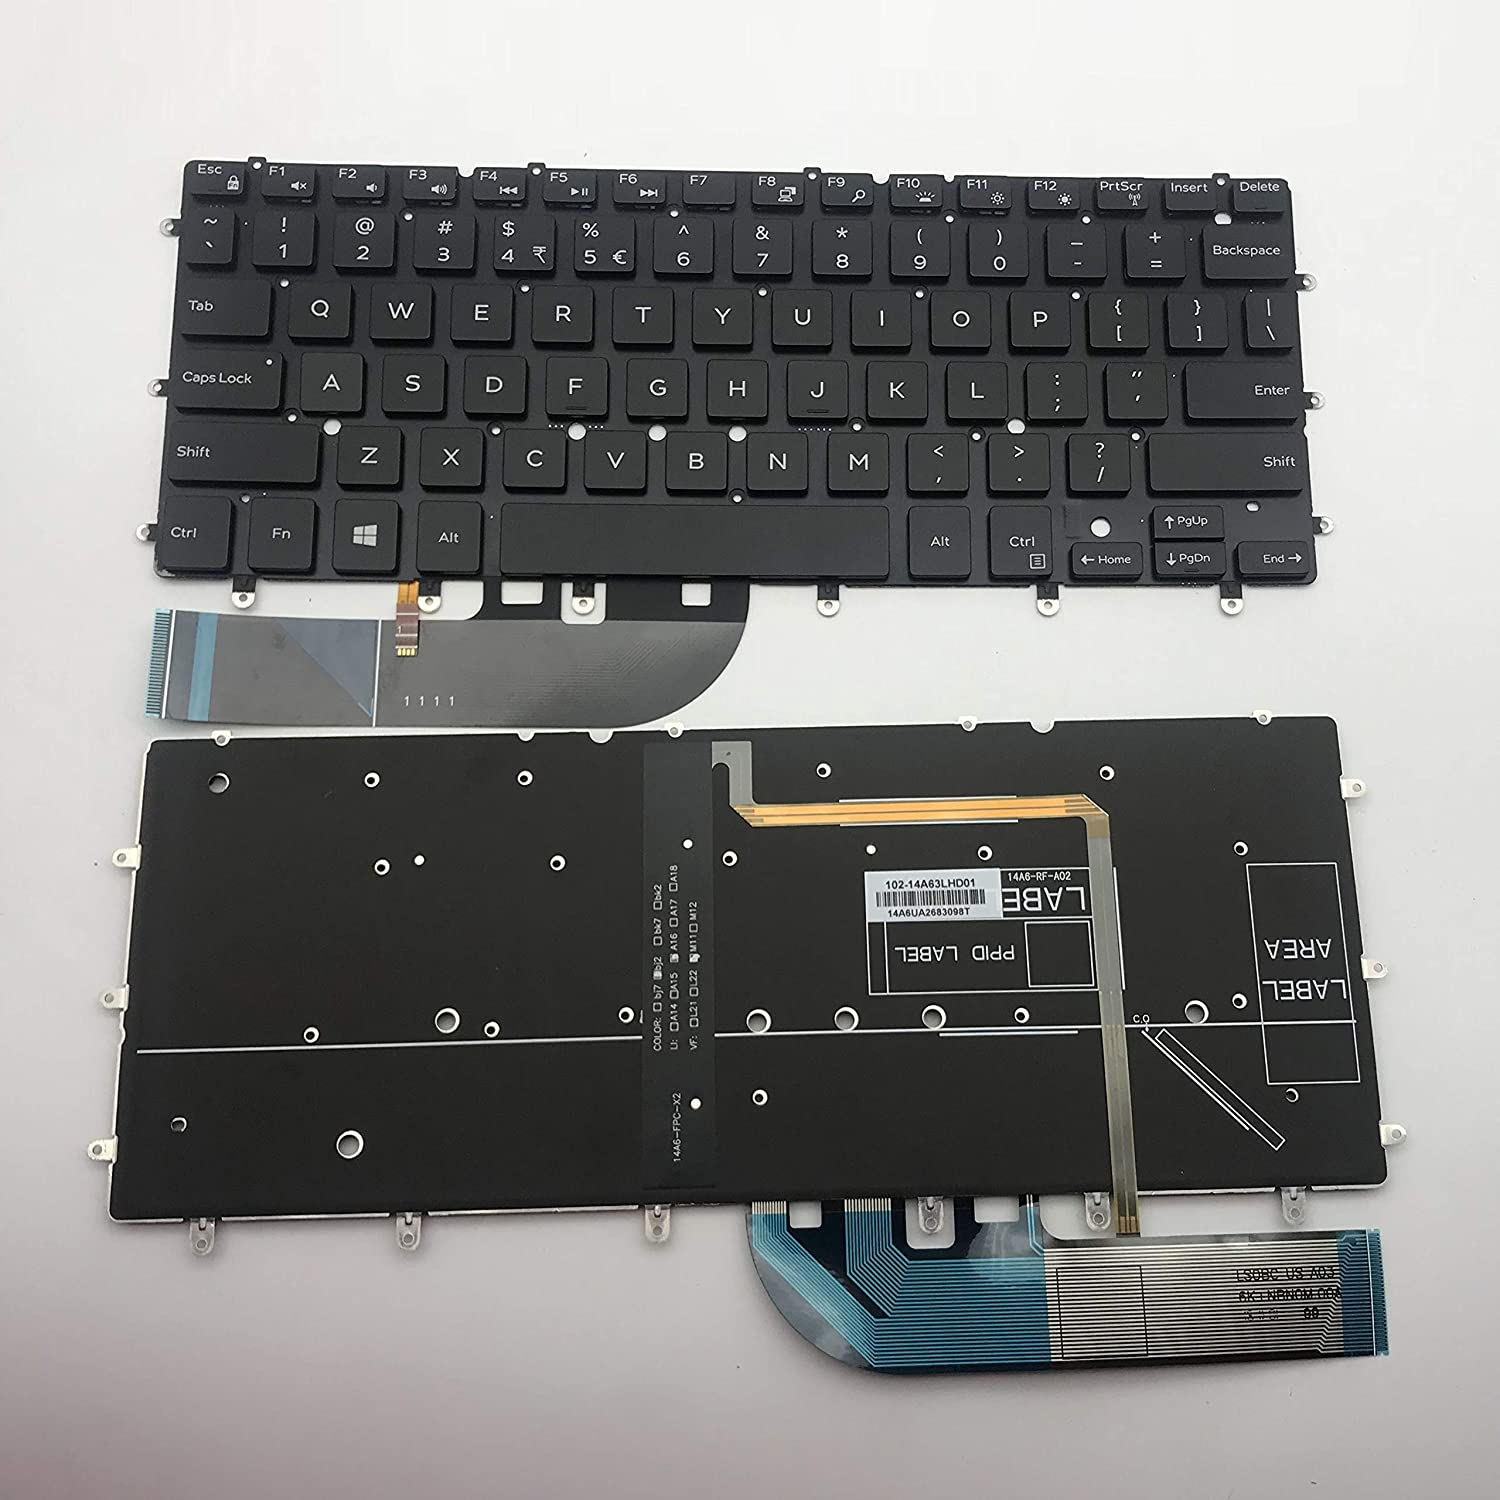 Moon2020 Replacement Keyboard for Dell XPS 13-9343 13D-9343 13-9350 XPS13 13-7000 7347 7348 7352 7353 7359 XPS 15 9550 Laptop Backlight No Frame